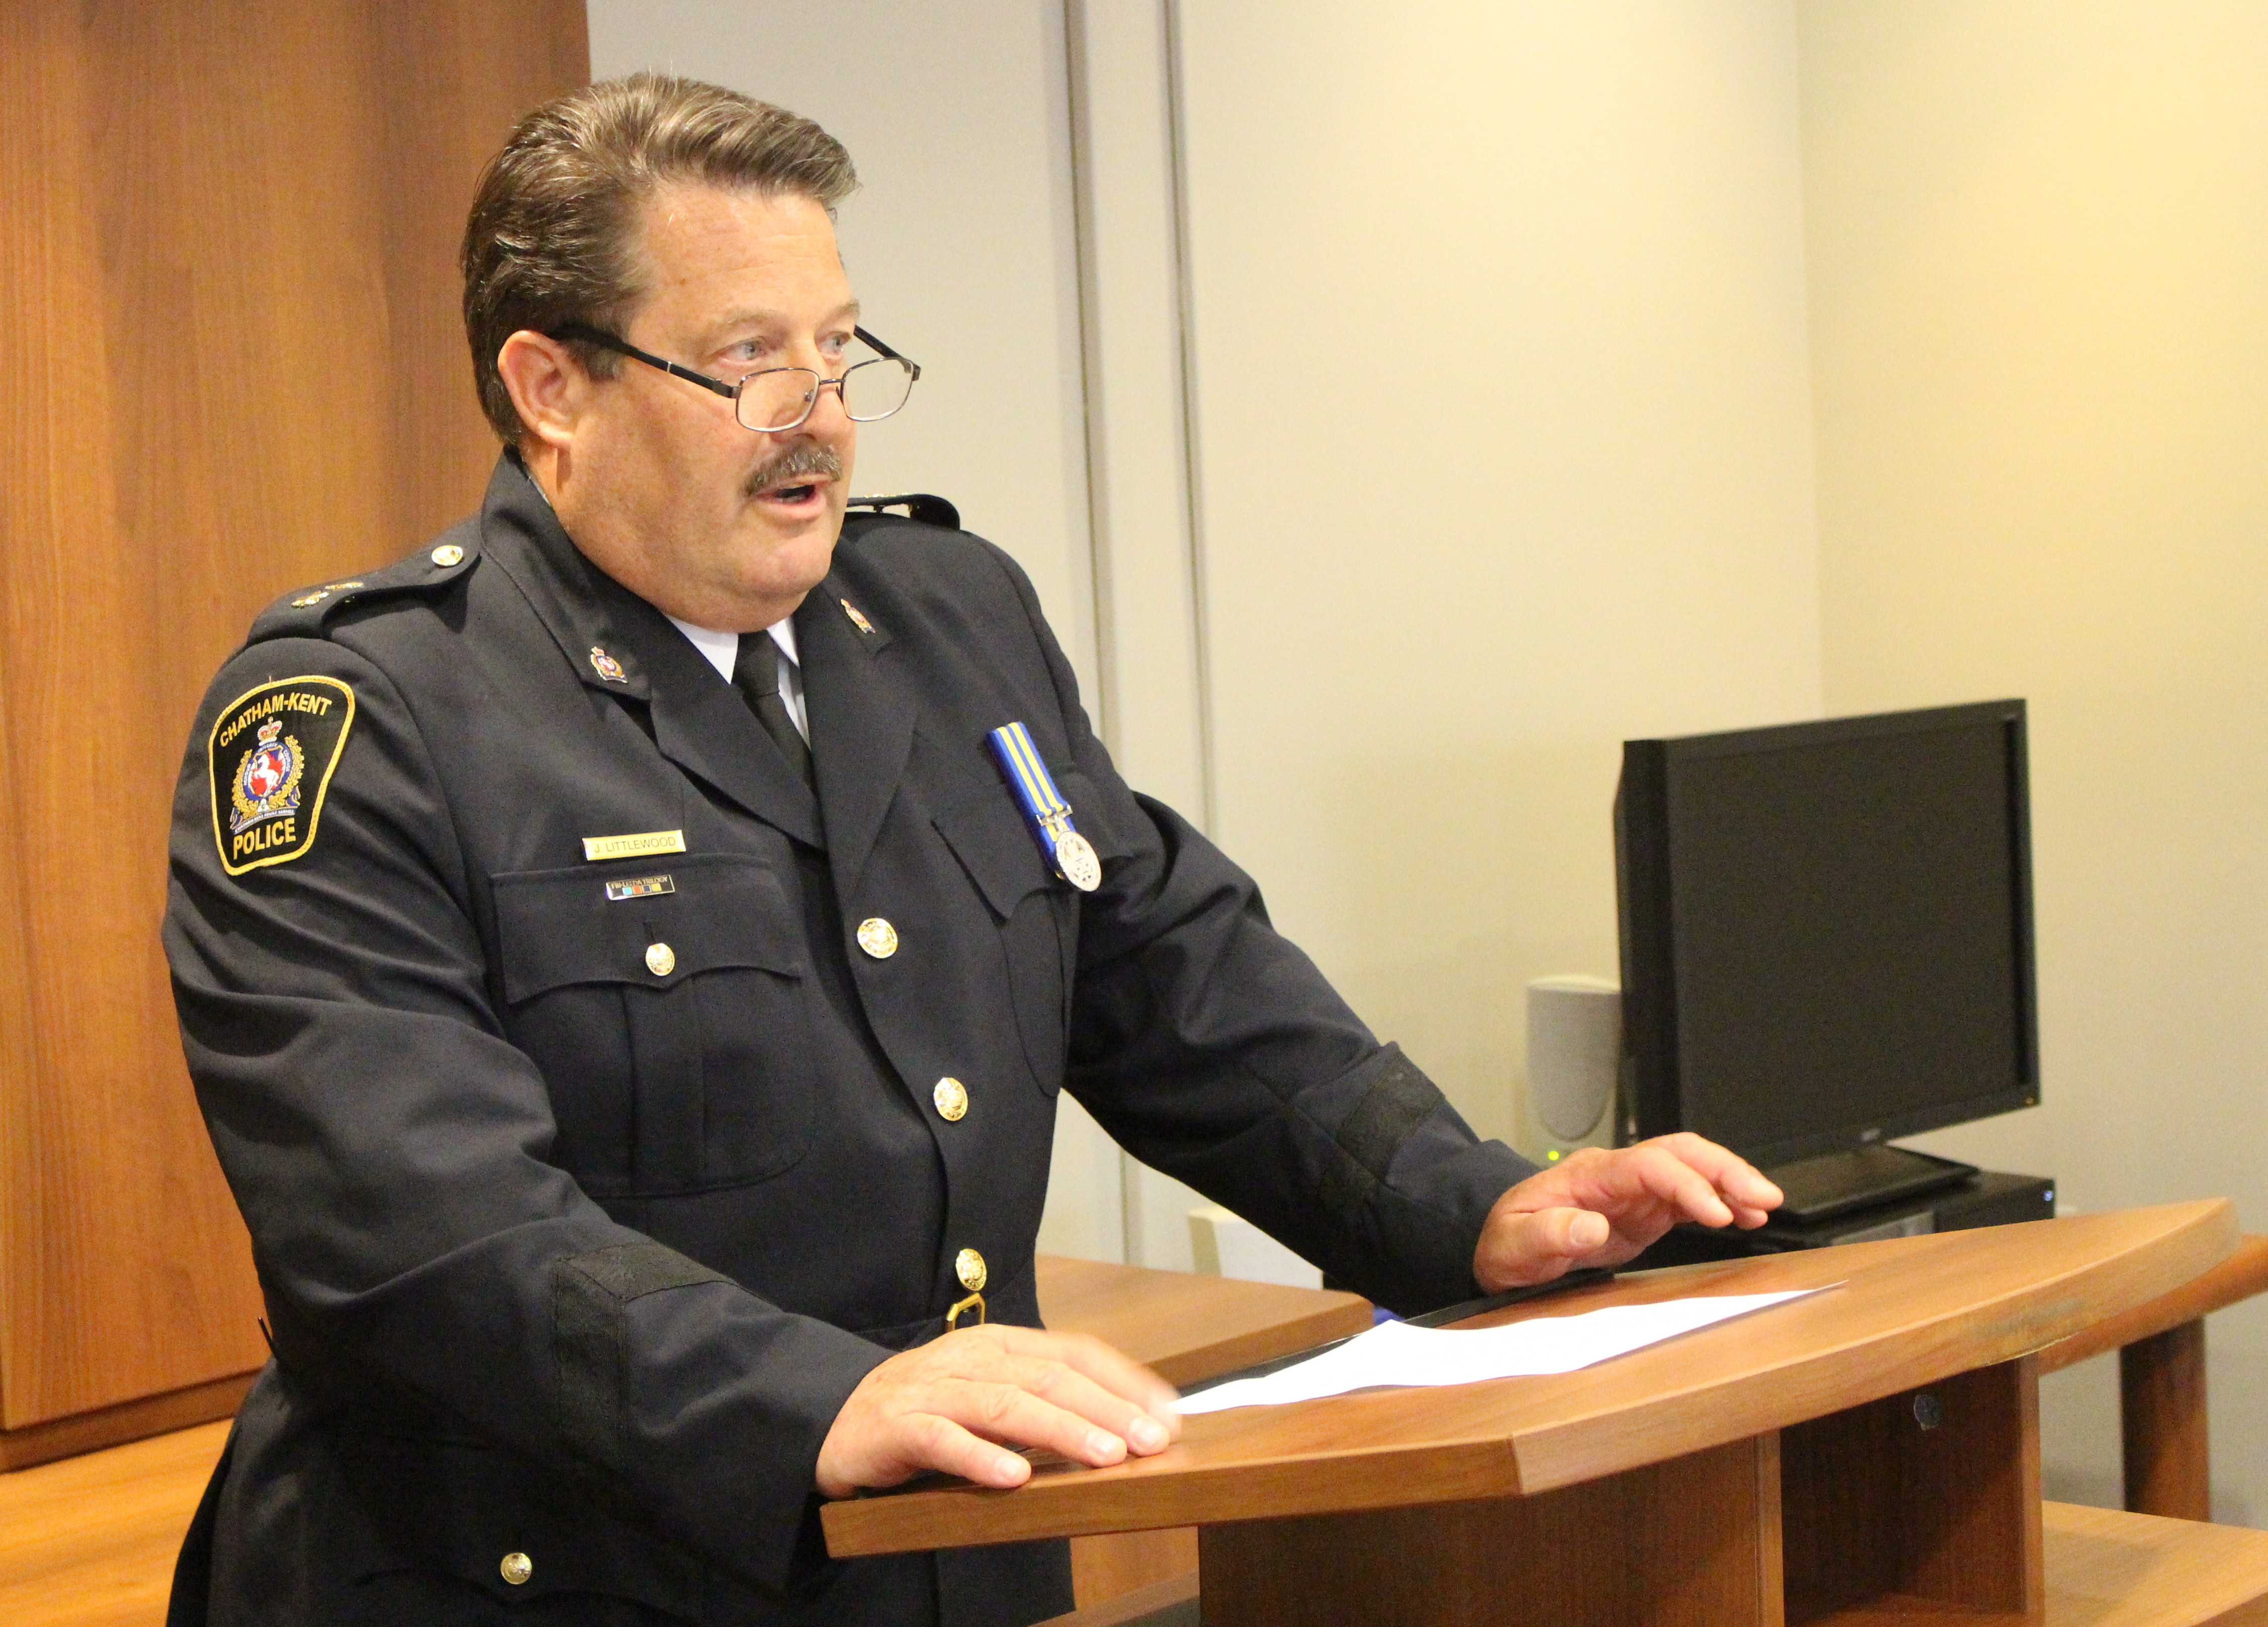 Chatham-Kent Deputy Police Chief Designate Jeff Littlewood at police headquarters, July 23, 2015. (Photo by Mike Vlasveld)